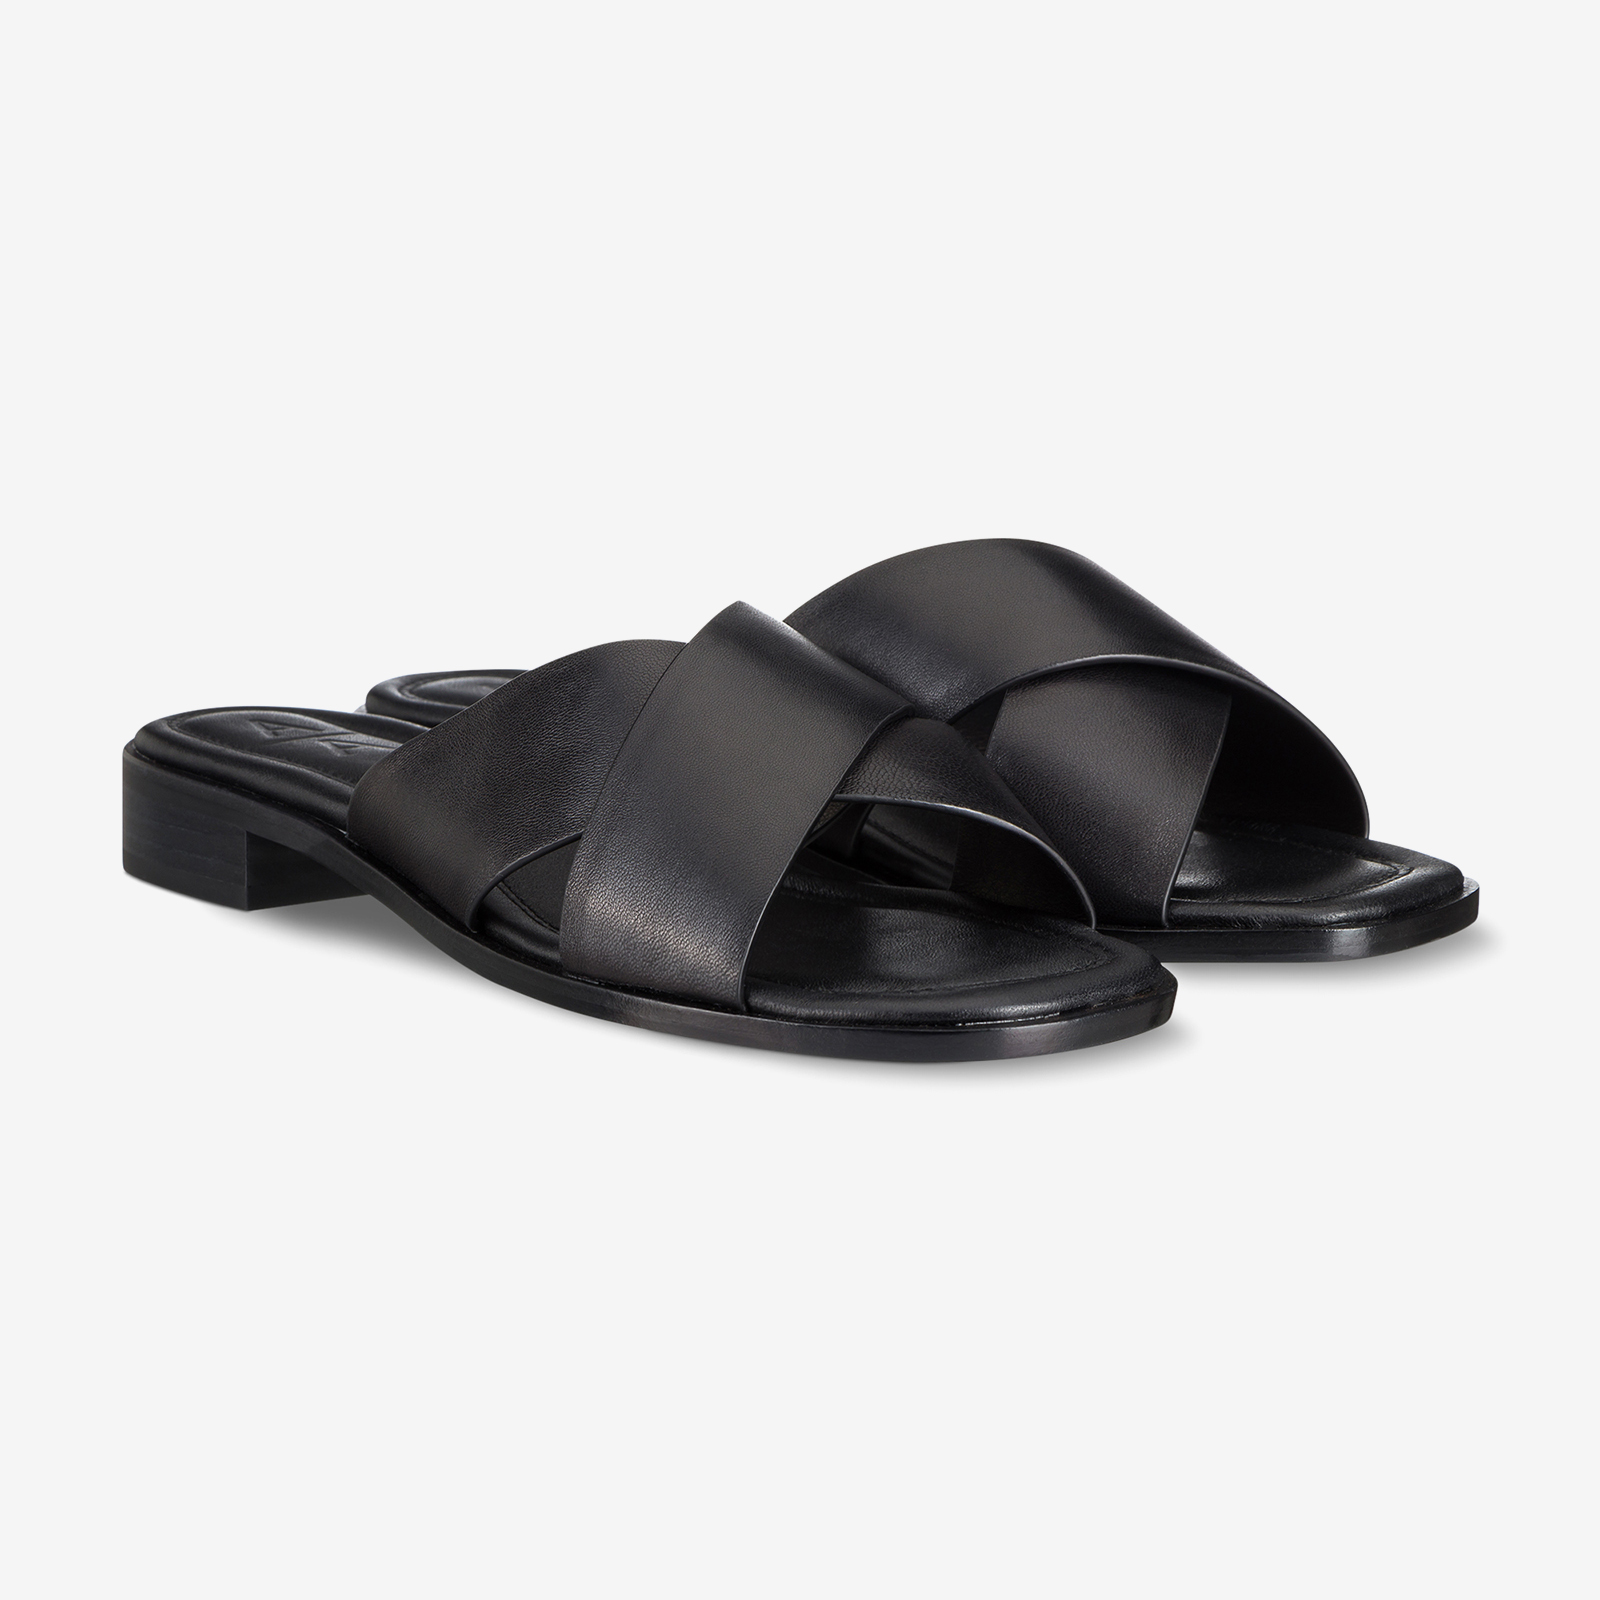 Sandals product image